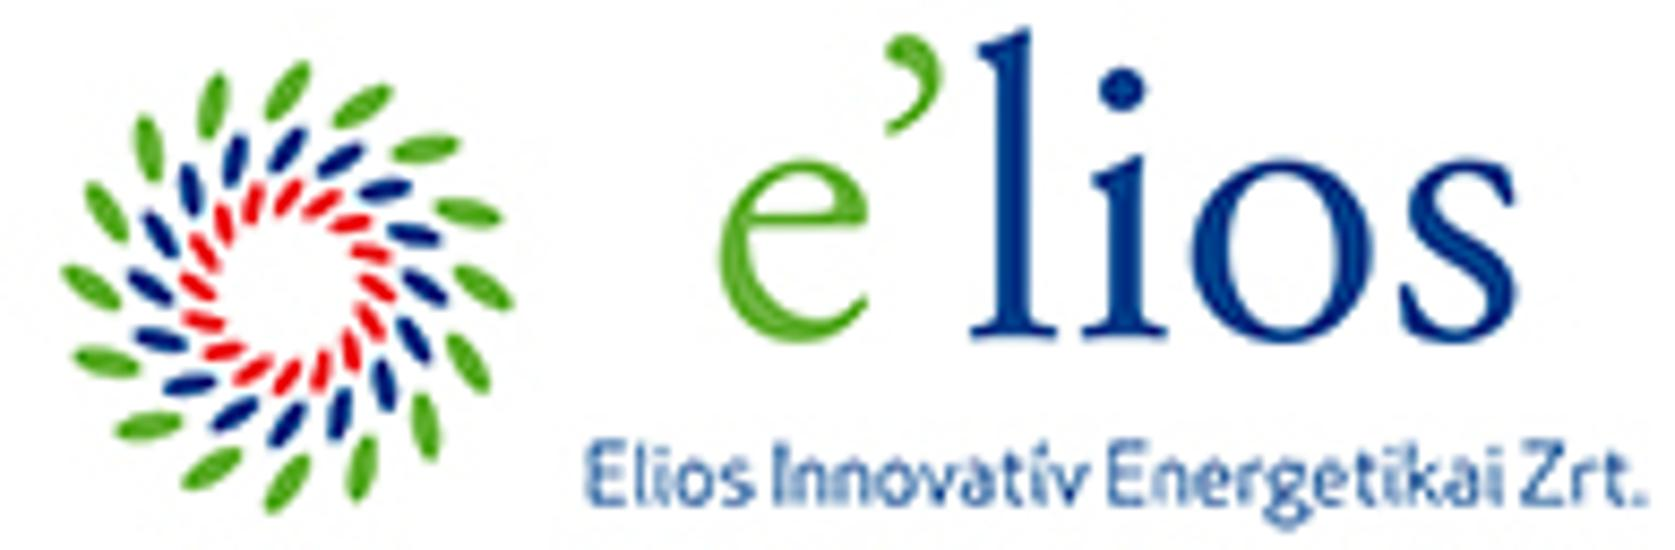 OLAF Confirms Inquiry Into Hungarian Company Elios